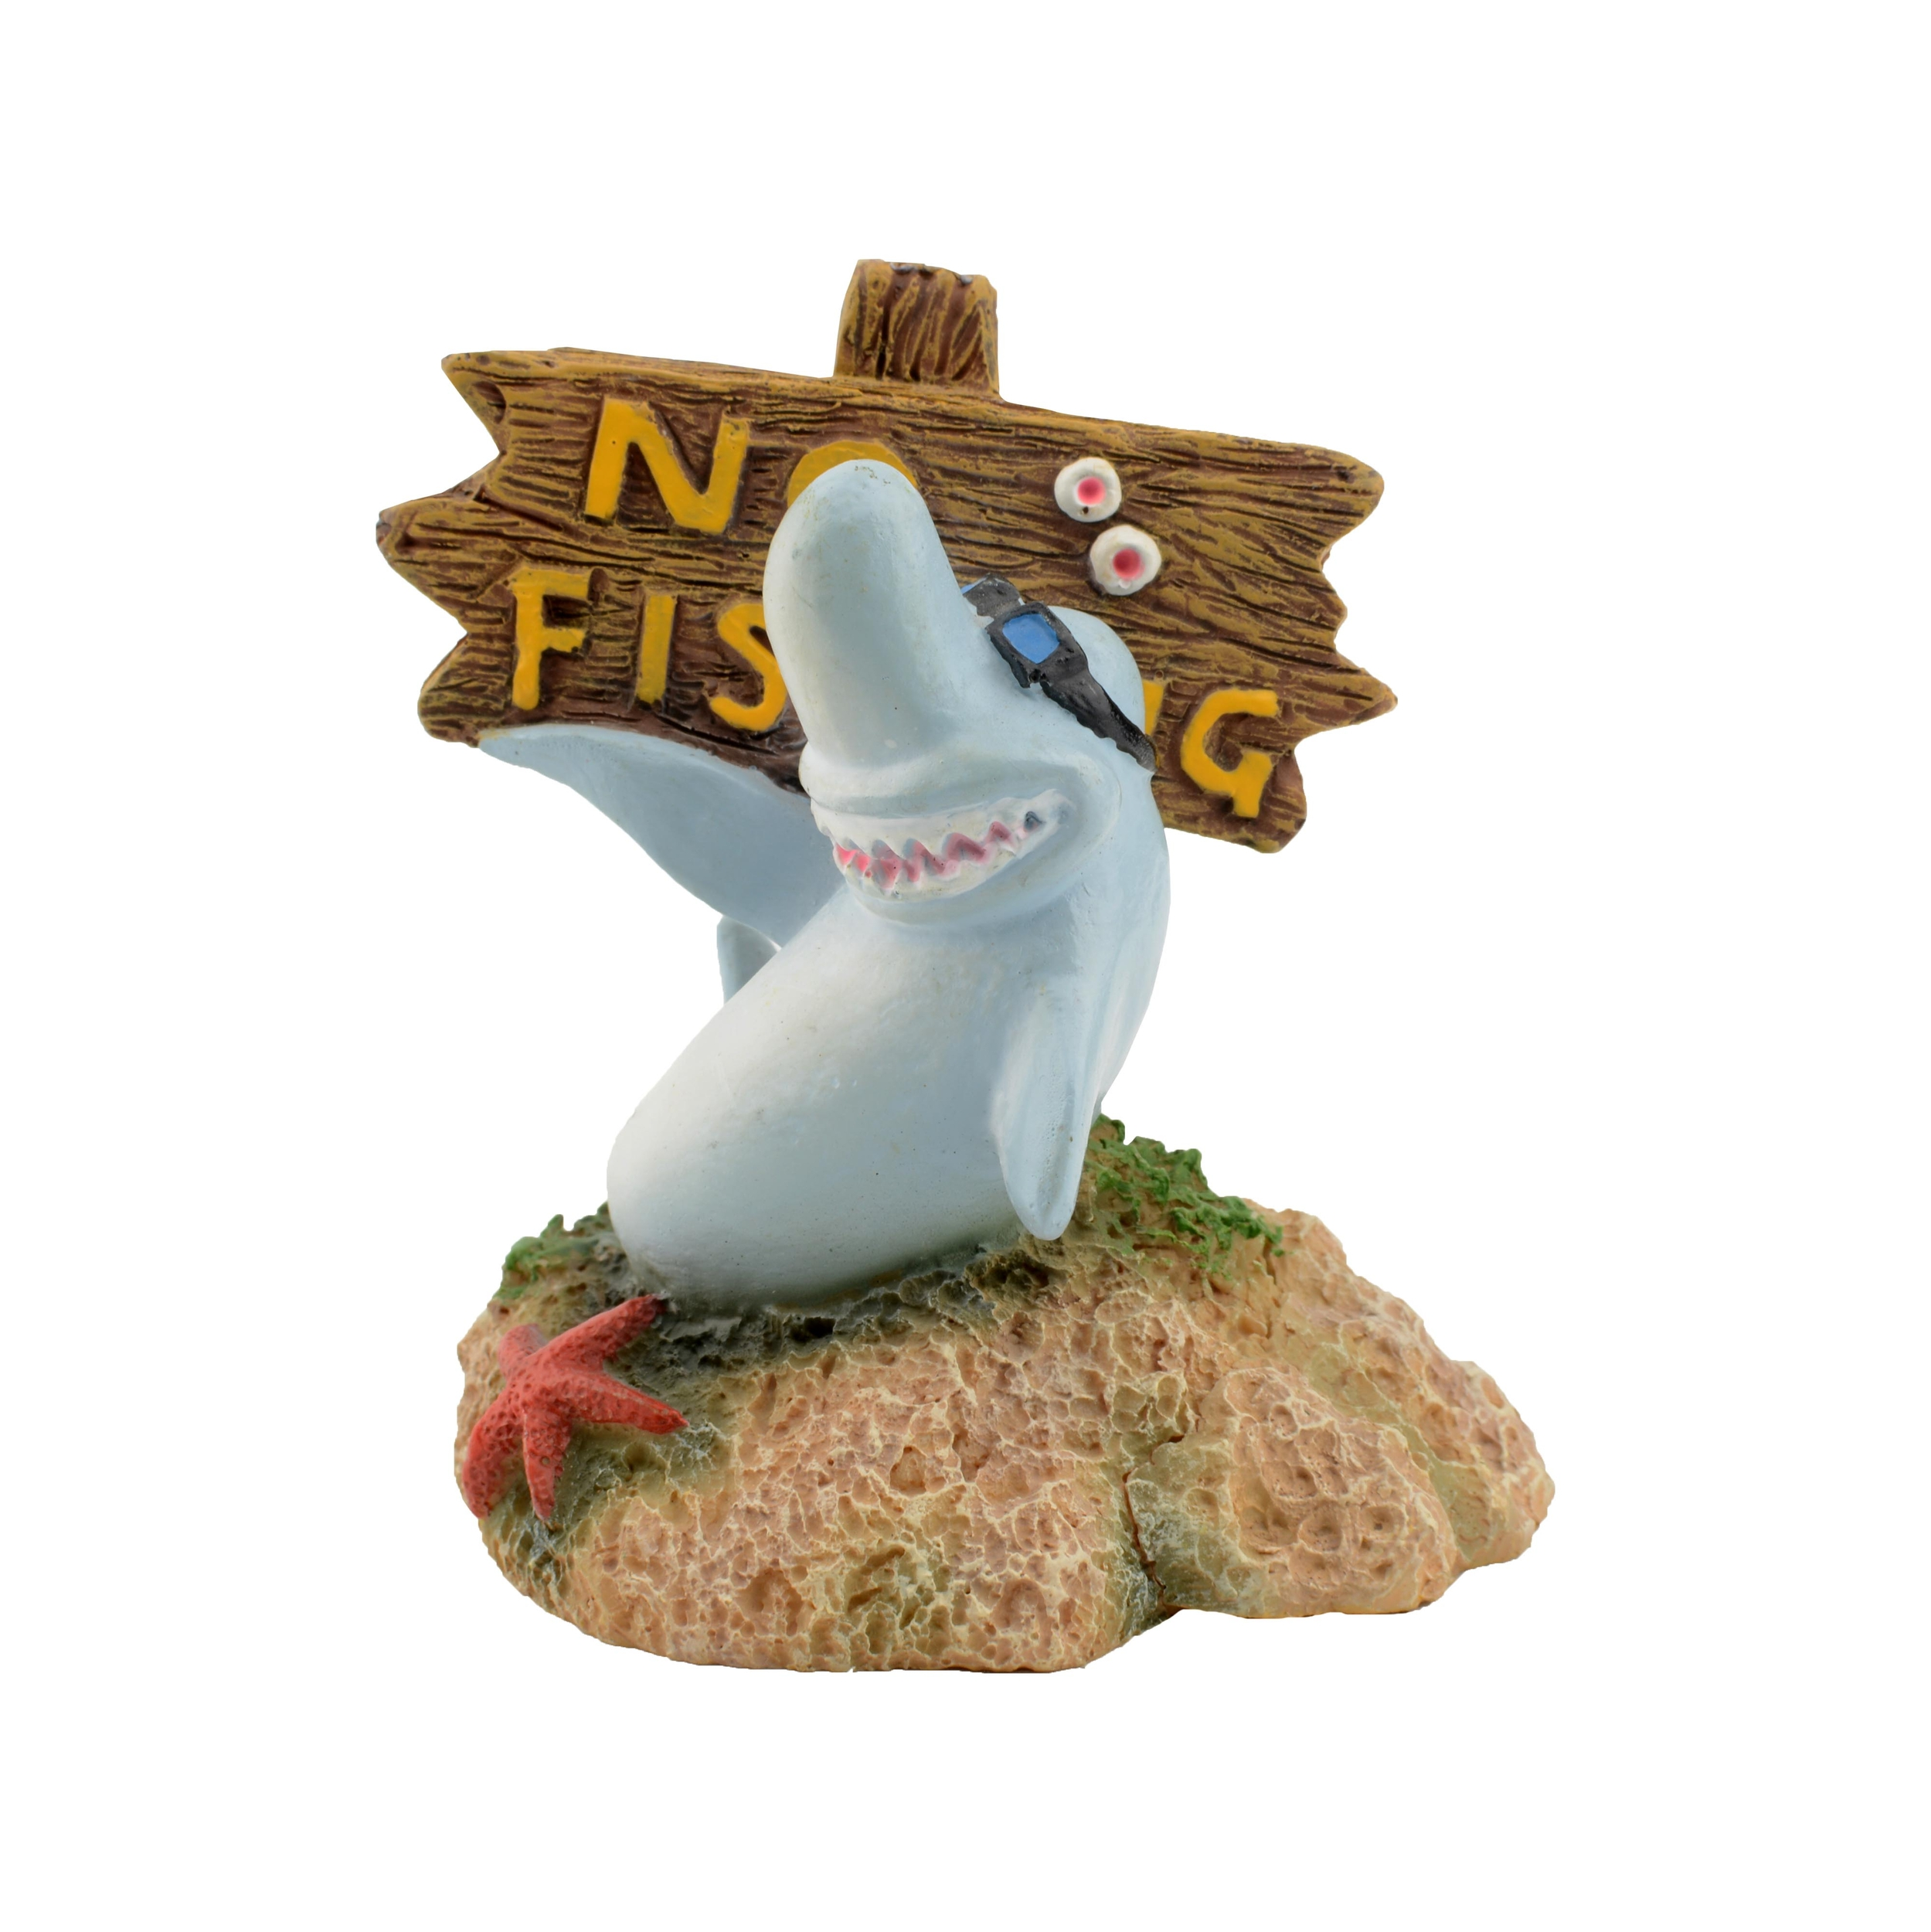 AQUAVIE Fun Requin Panneau décoration aquarium 5 x 5 x 6,5 cm